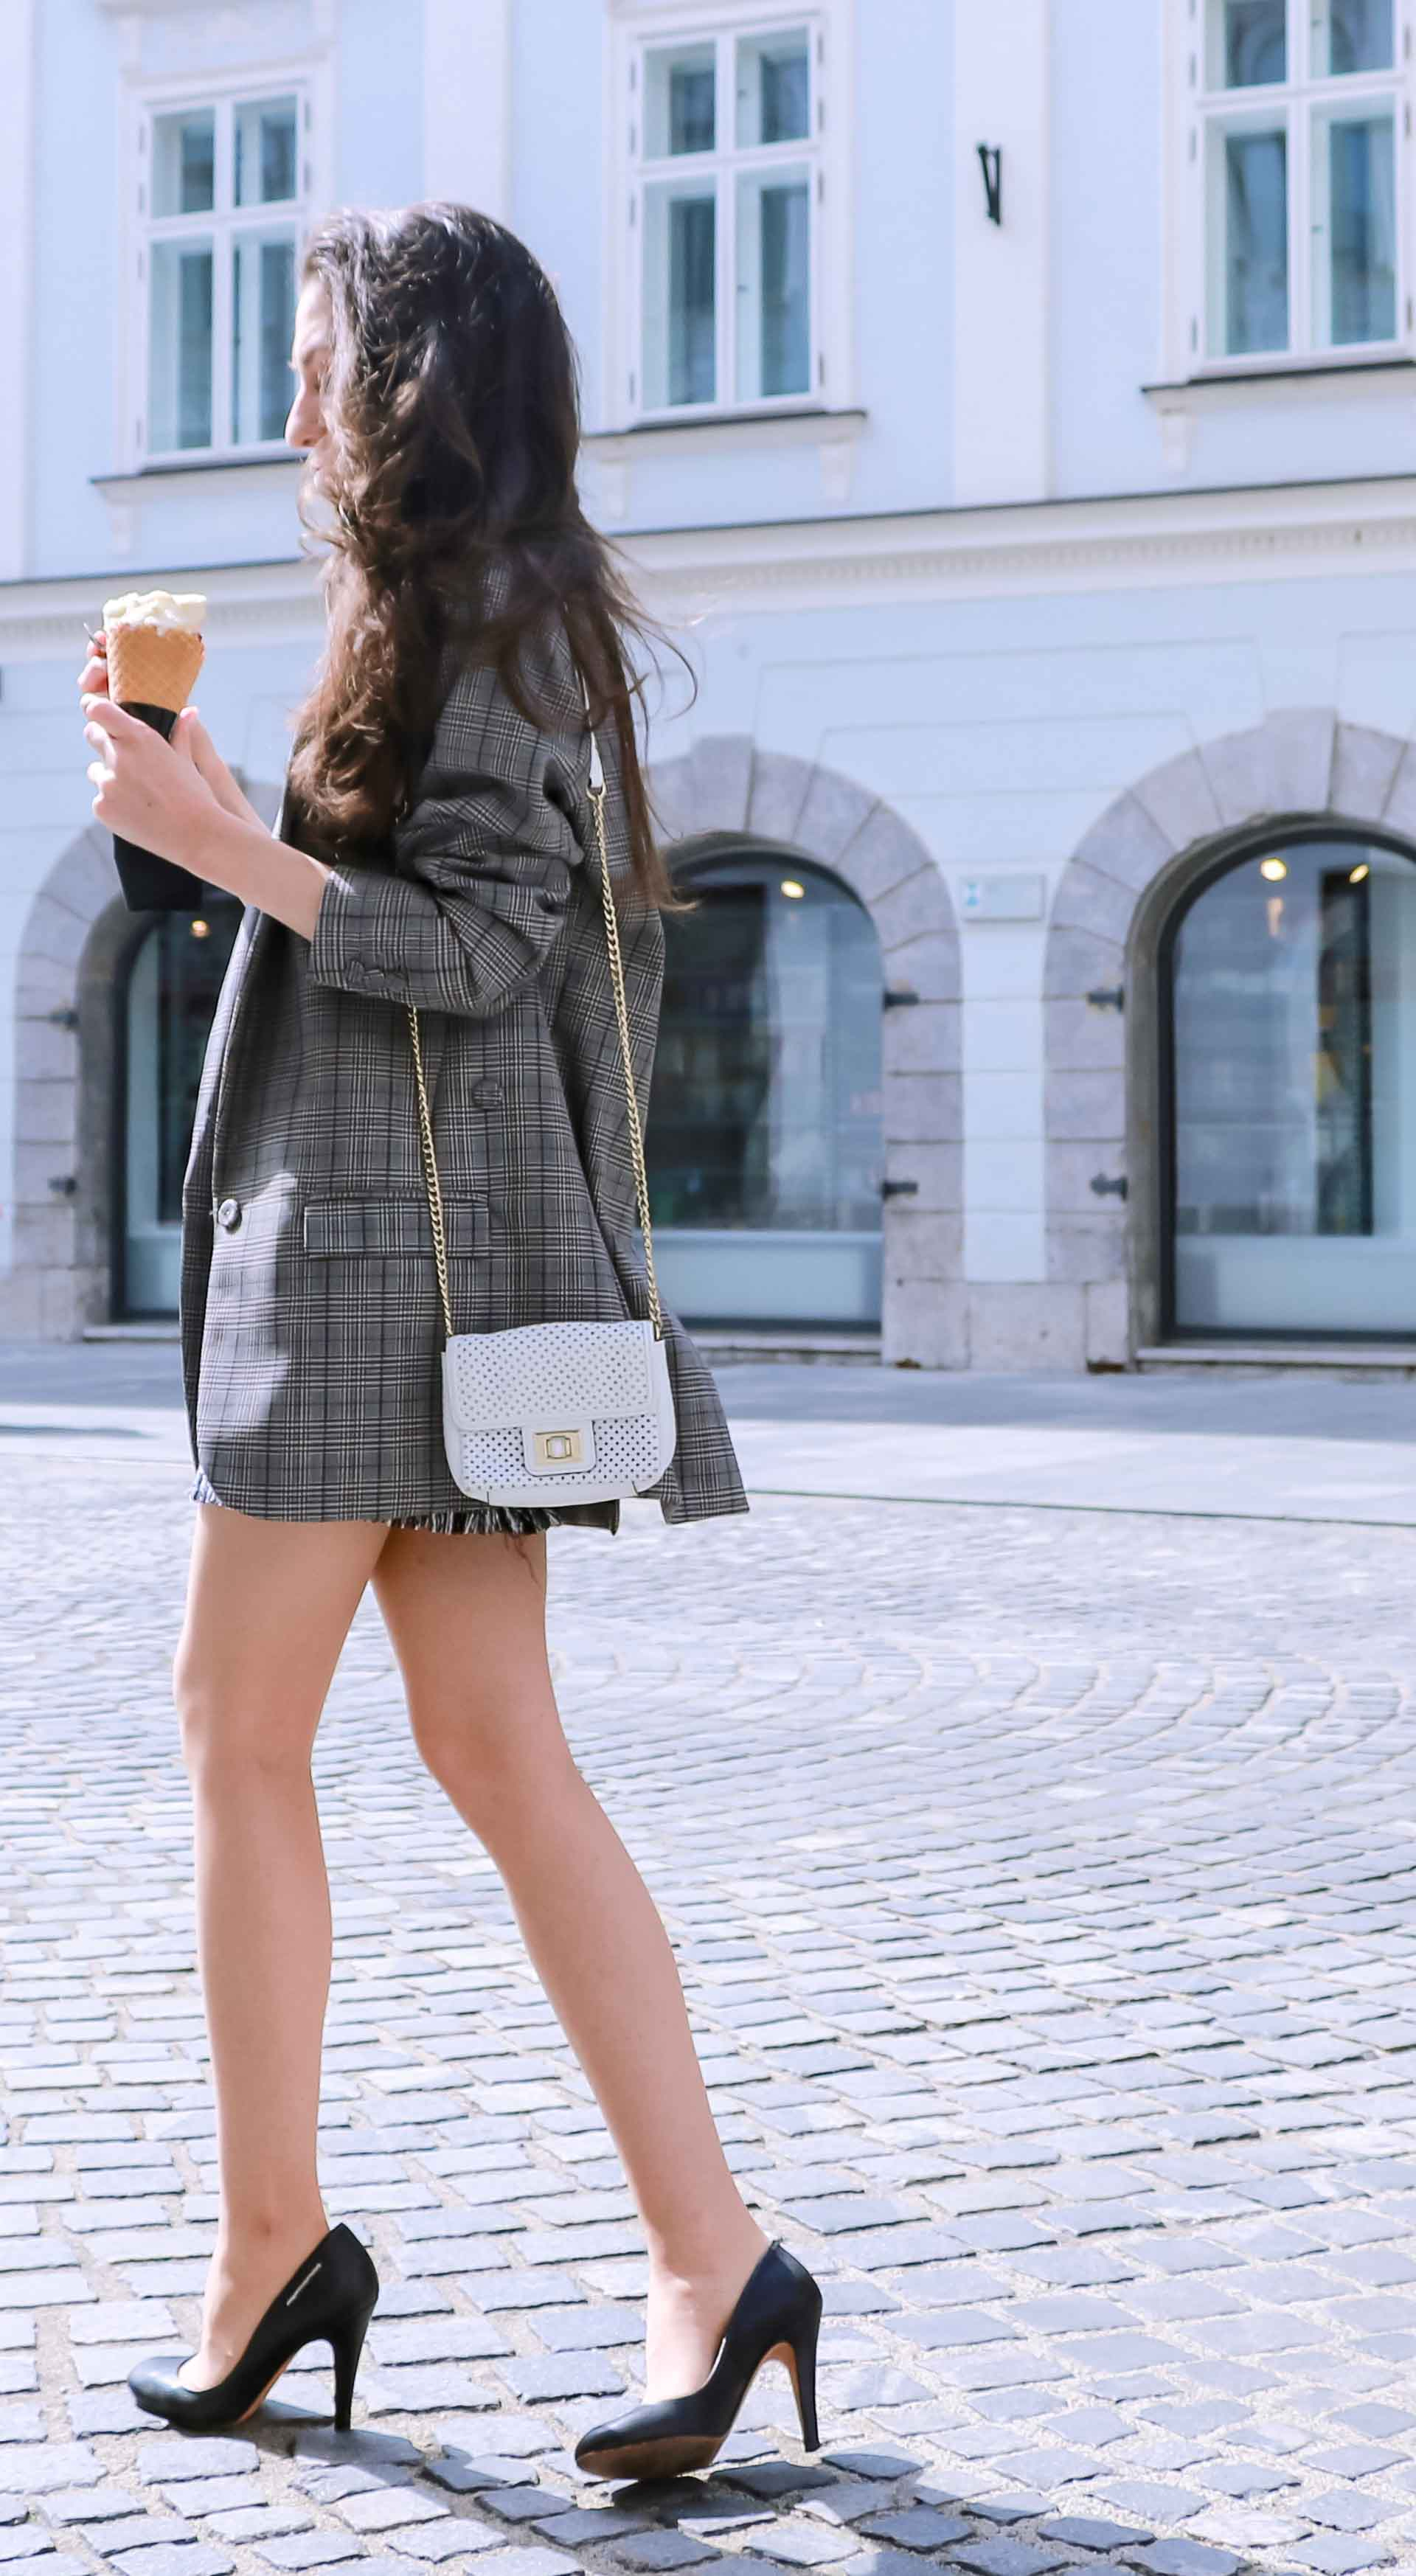 Fashion Blogger Veronika Lipar of Brunette from Wall Street wearing Erika Cavallini oversized boyfriend plaid blazer with short tweed black and white mini skirt from streets, black pumps and white chain strap shoulder bag while walking down the street in Ljubljana with ice cream in her hand